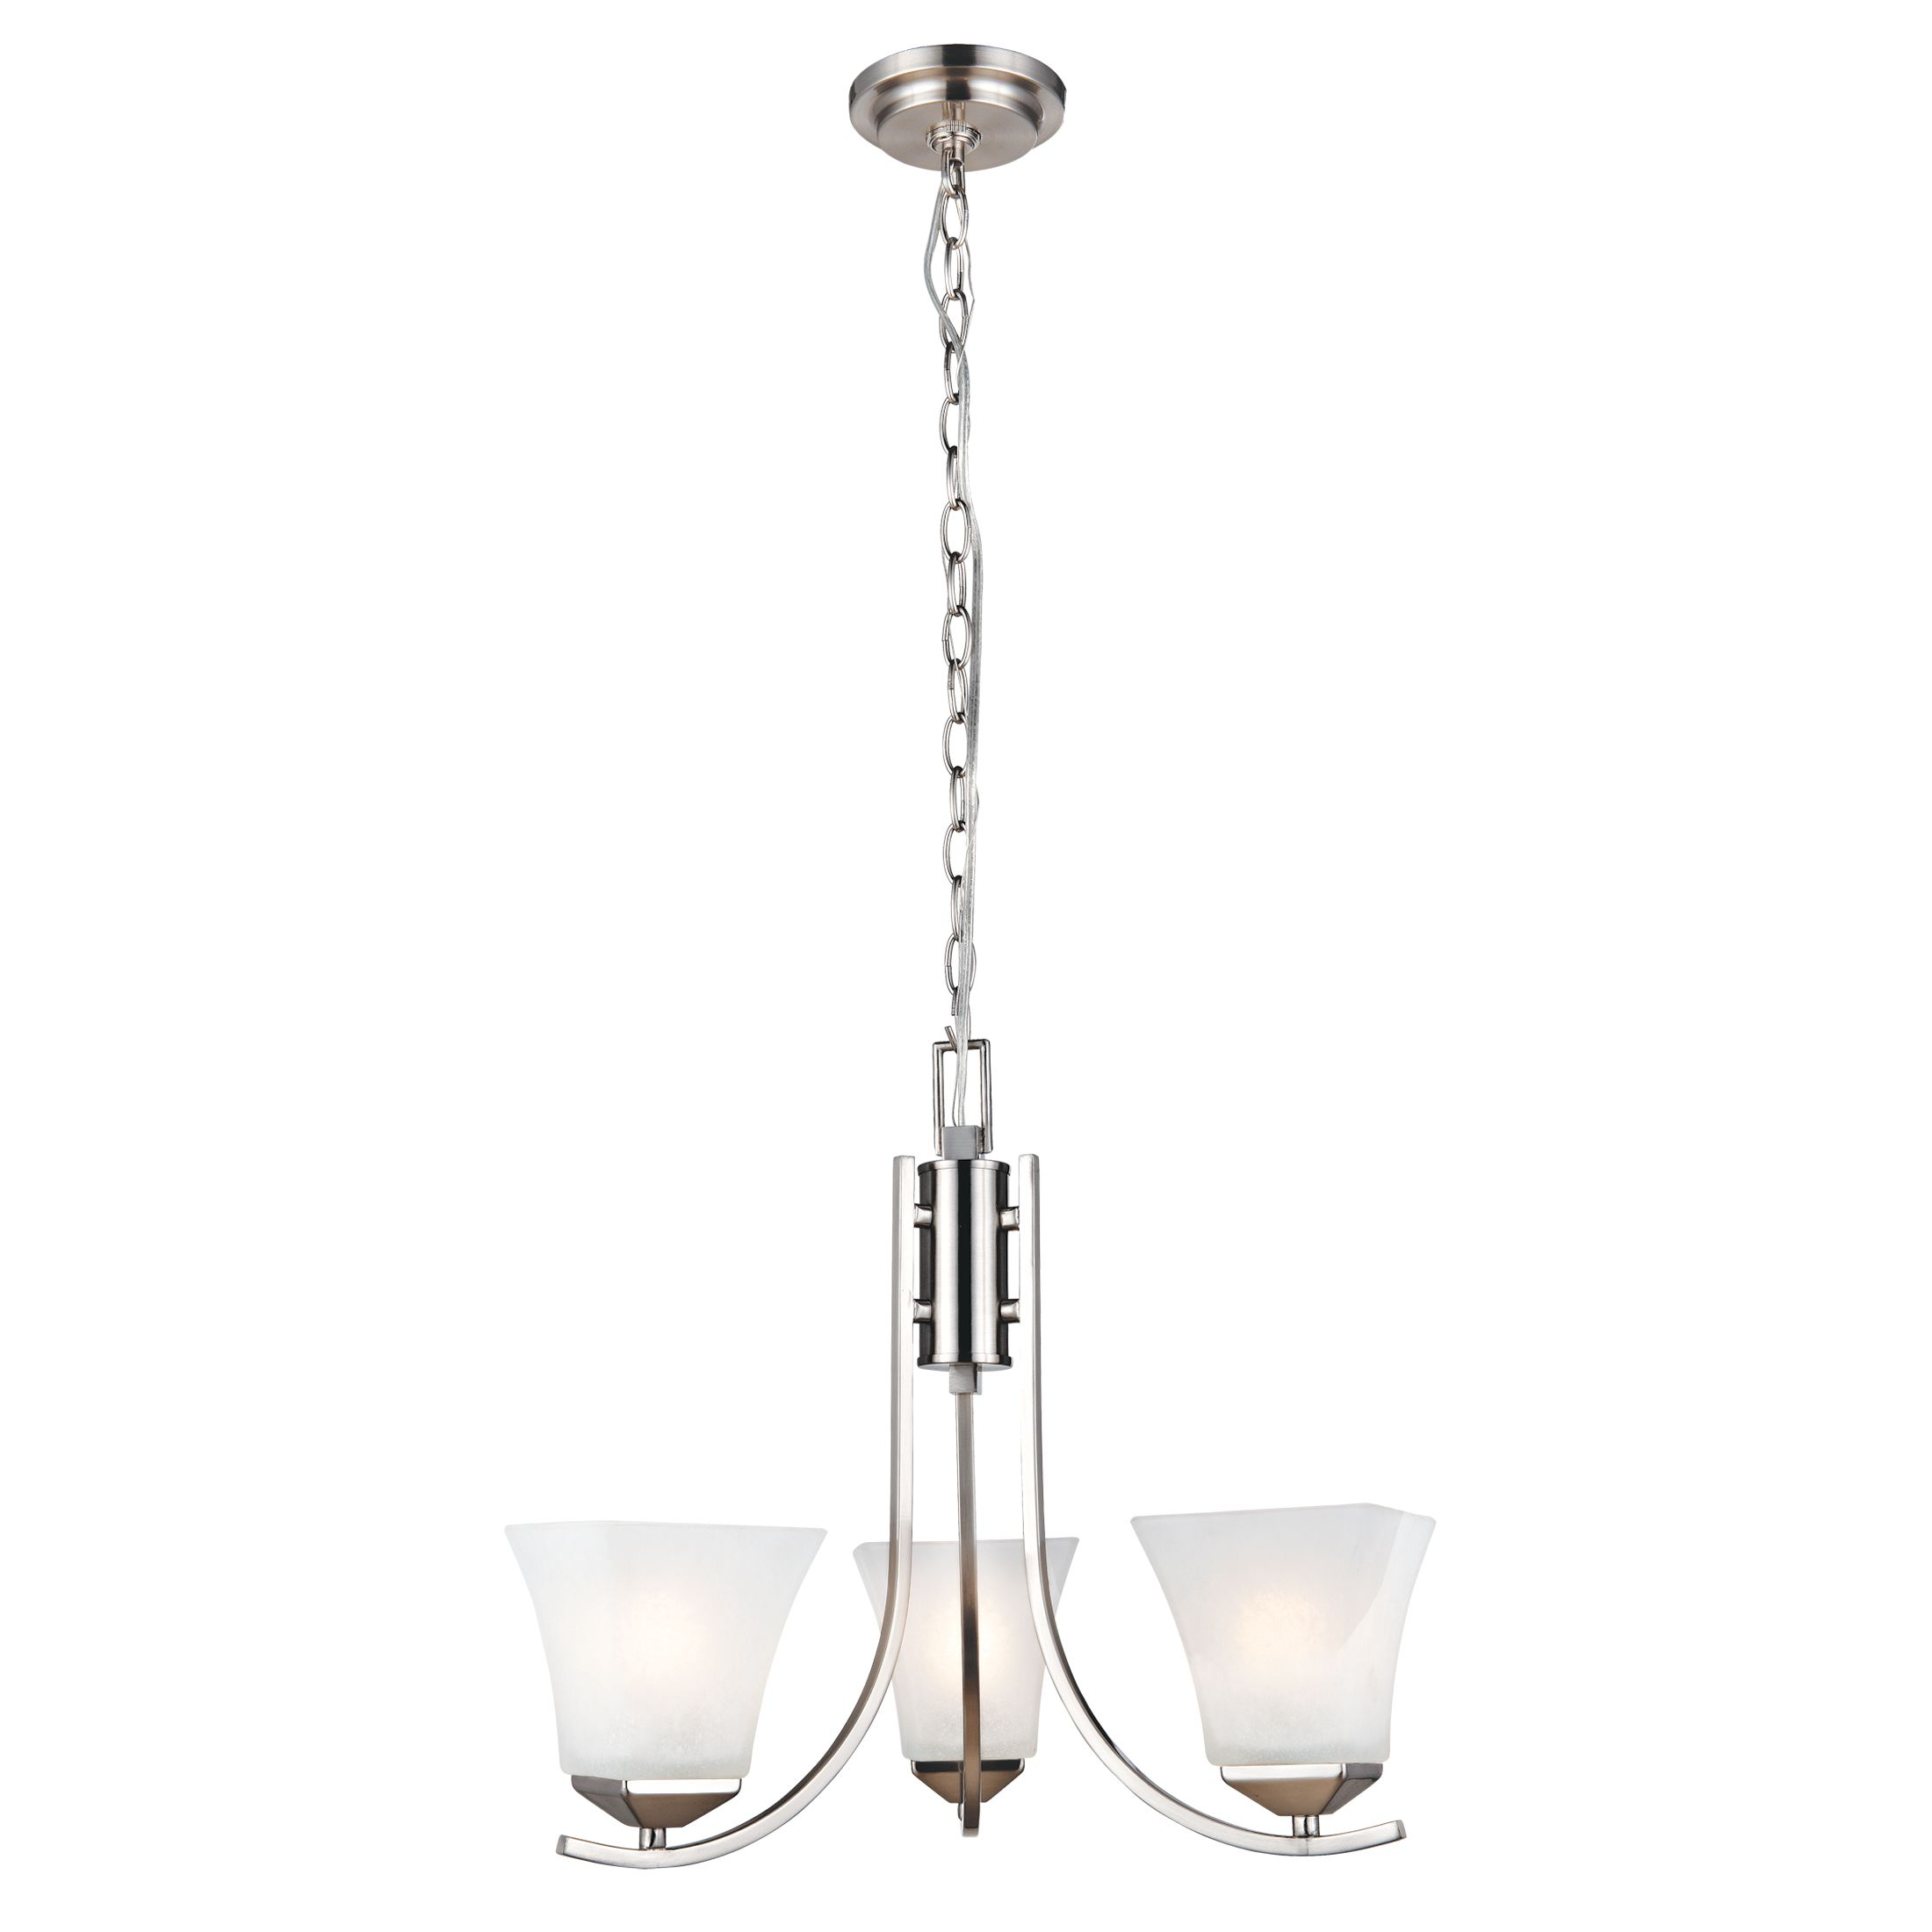 Torino 3-Light Chandelier, Satin Nickel Finish #514828